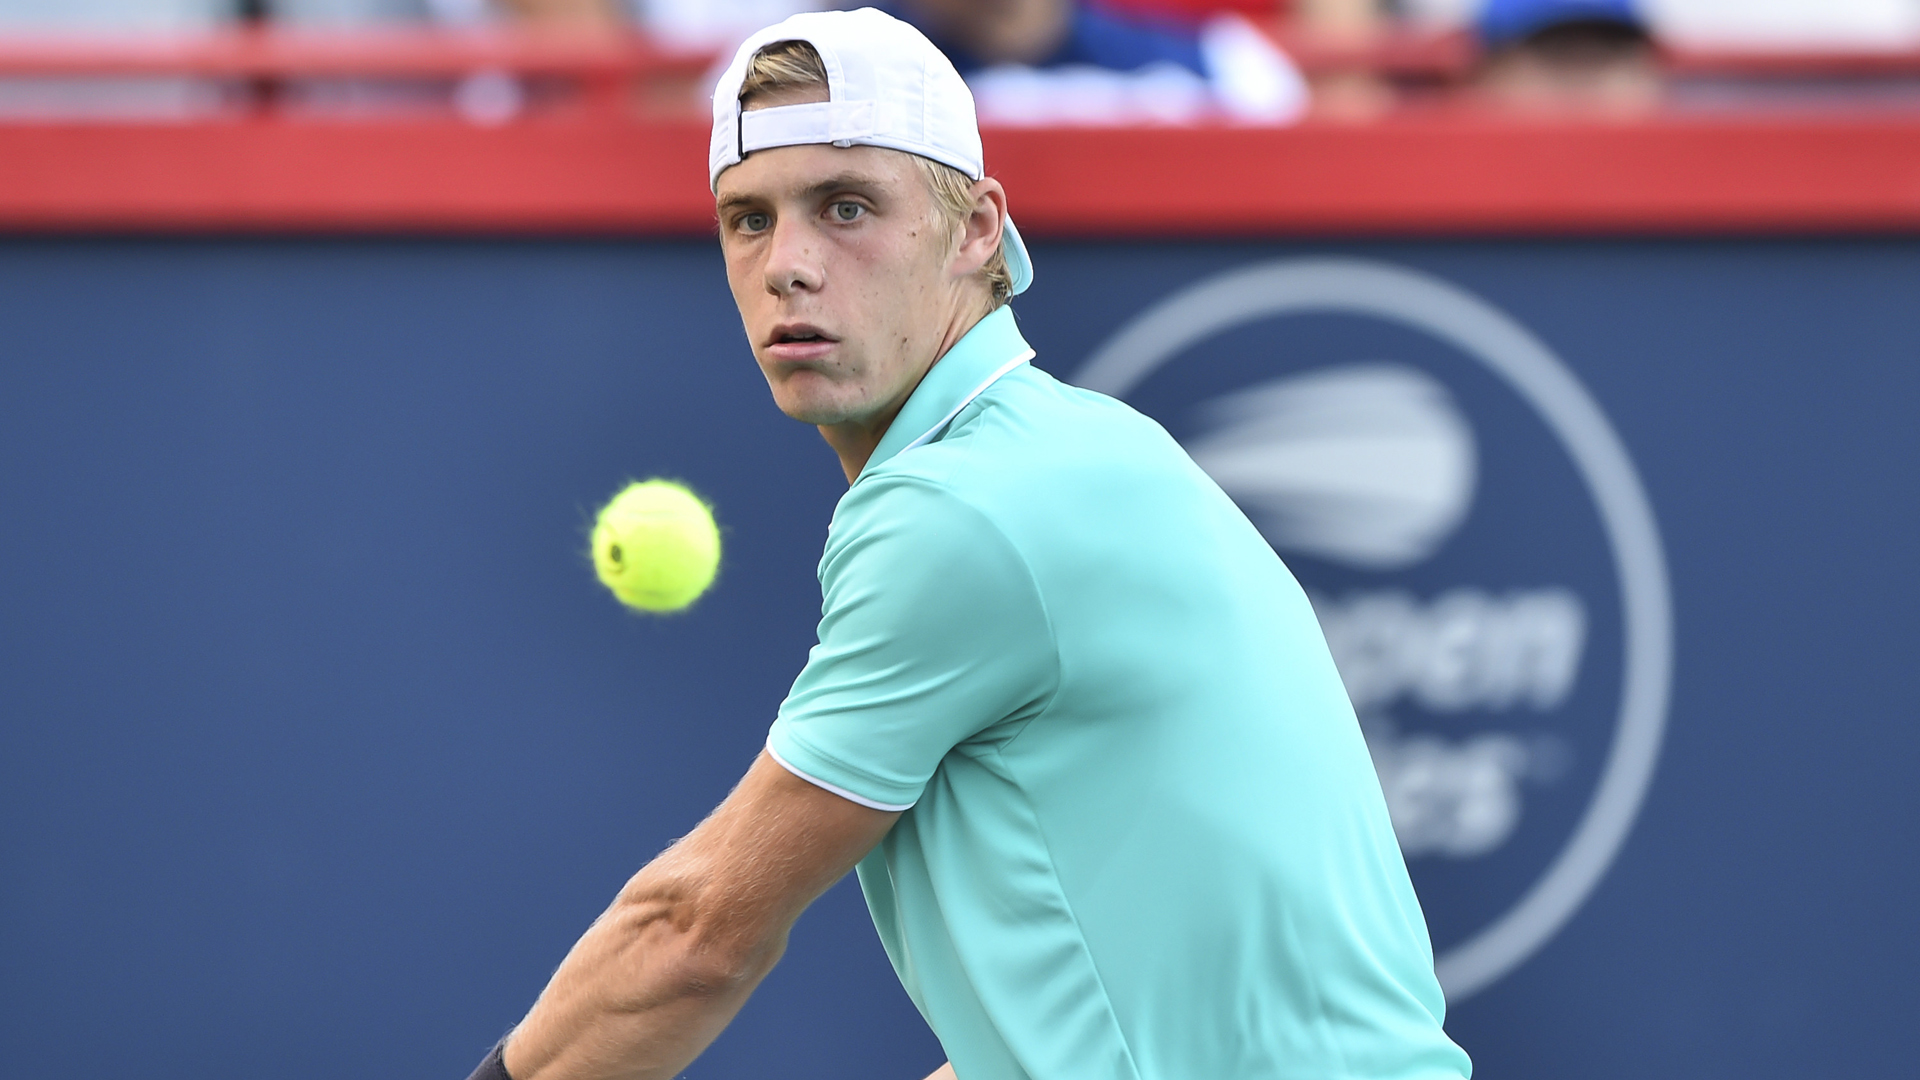 Shapovalov cruises into last 16, Rublev battles through at Winston-Salem Open